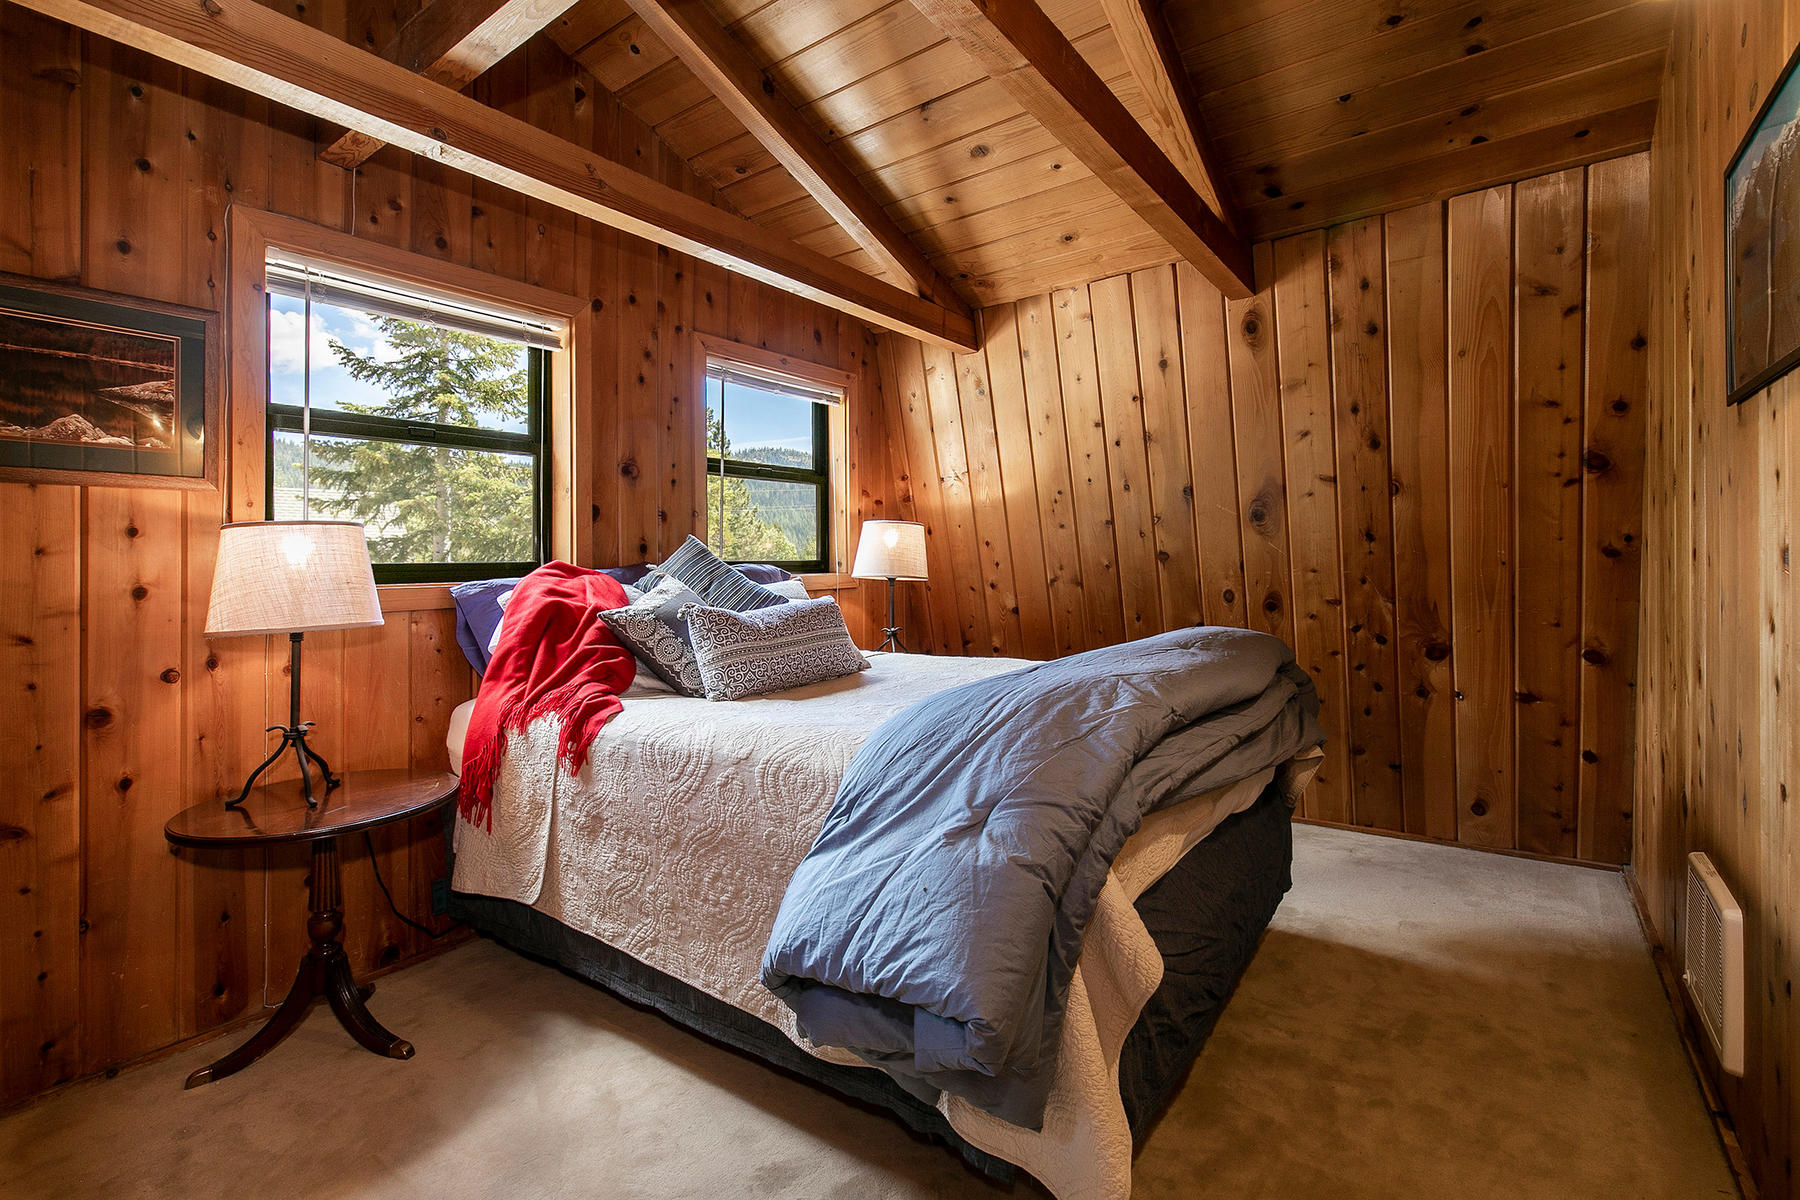 Additional photo for property listing at 662 Victor Place, Olympic Valley, CA 662 Victor Place 奥林匹克山, 加利福尼亚州 96146 美国